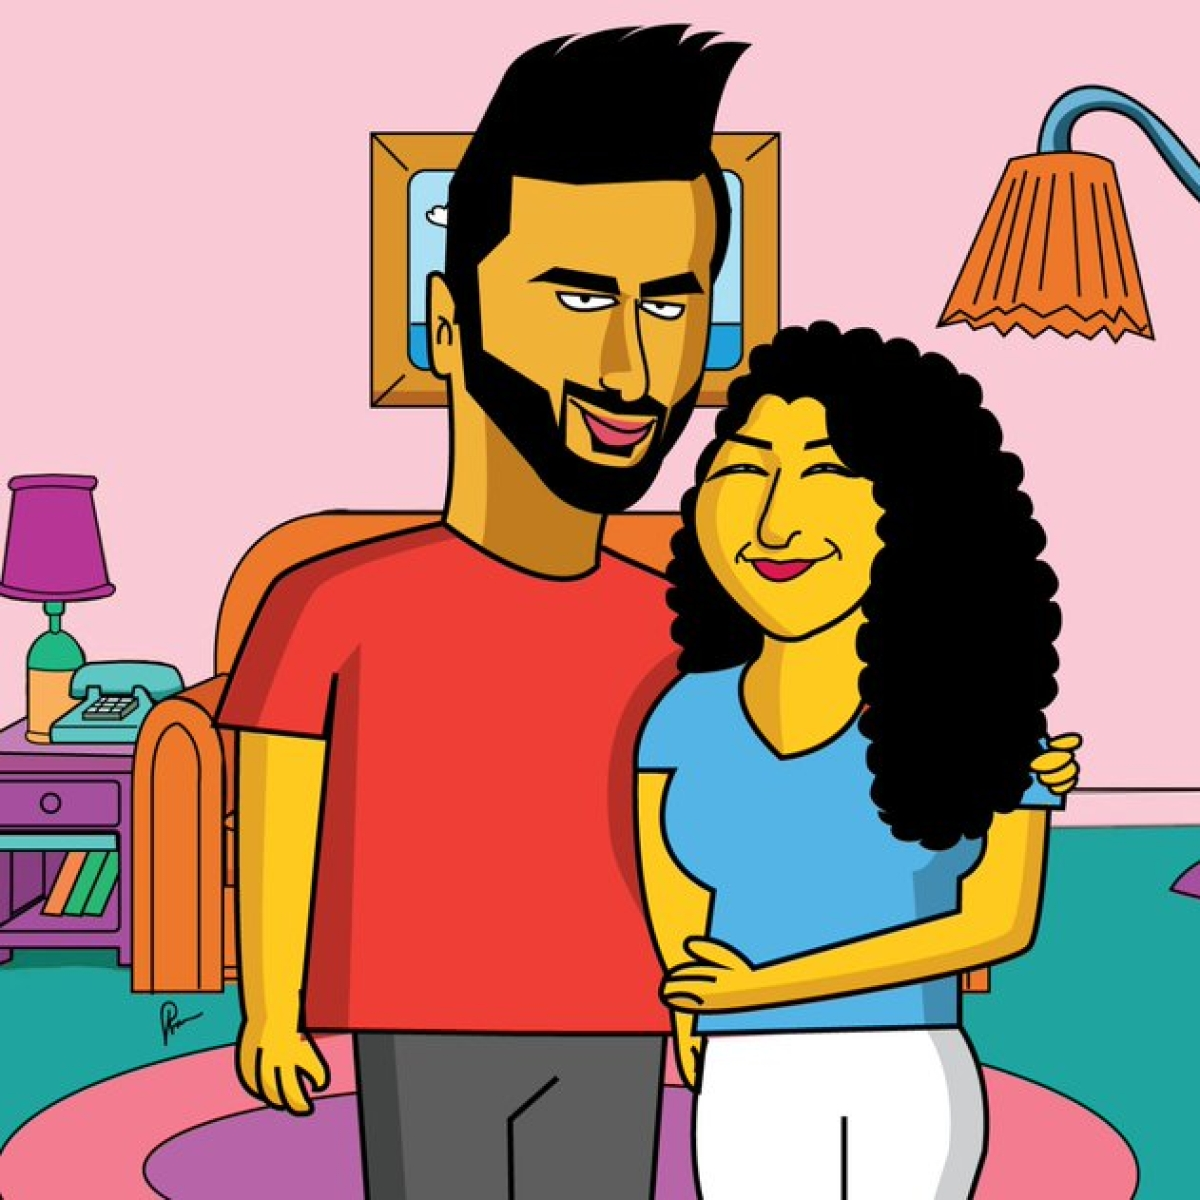 Arjun Kapoor and his sister Anshula turn into 'The Simpsons'